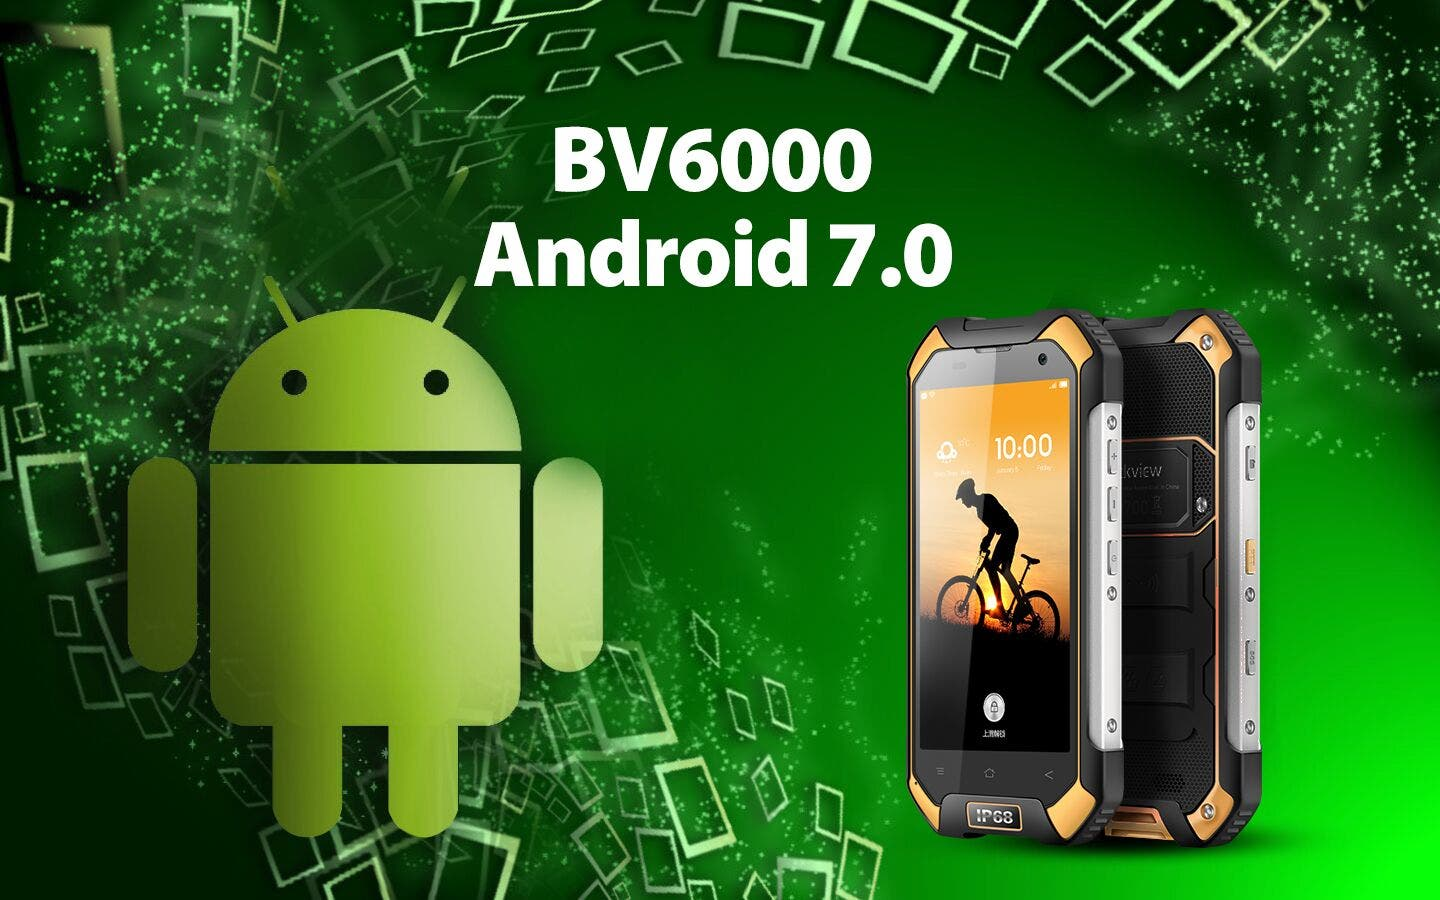 Blackview BV6000 Android 7.0 Nougat